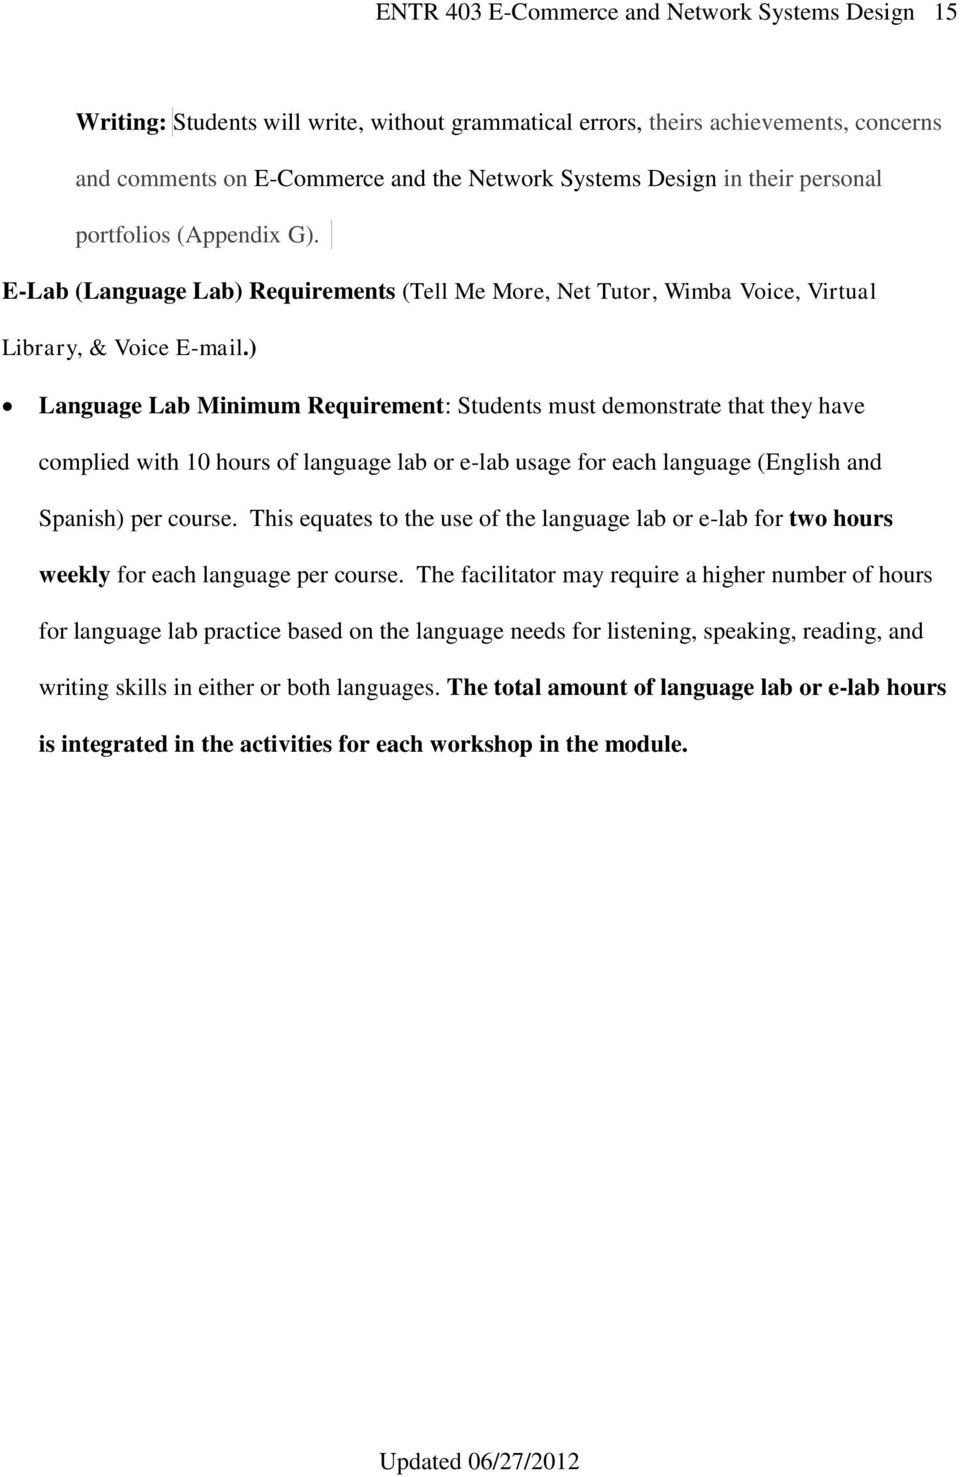 ) Language Lab Minimum Requirement: Students must demonstrate that they have complied with 10 hours of language lab or e-lab usage for each language (English and Spanish) per course.